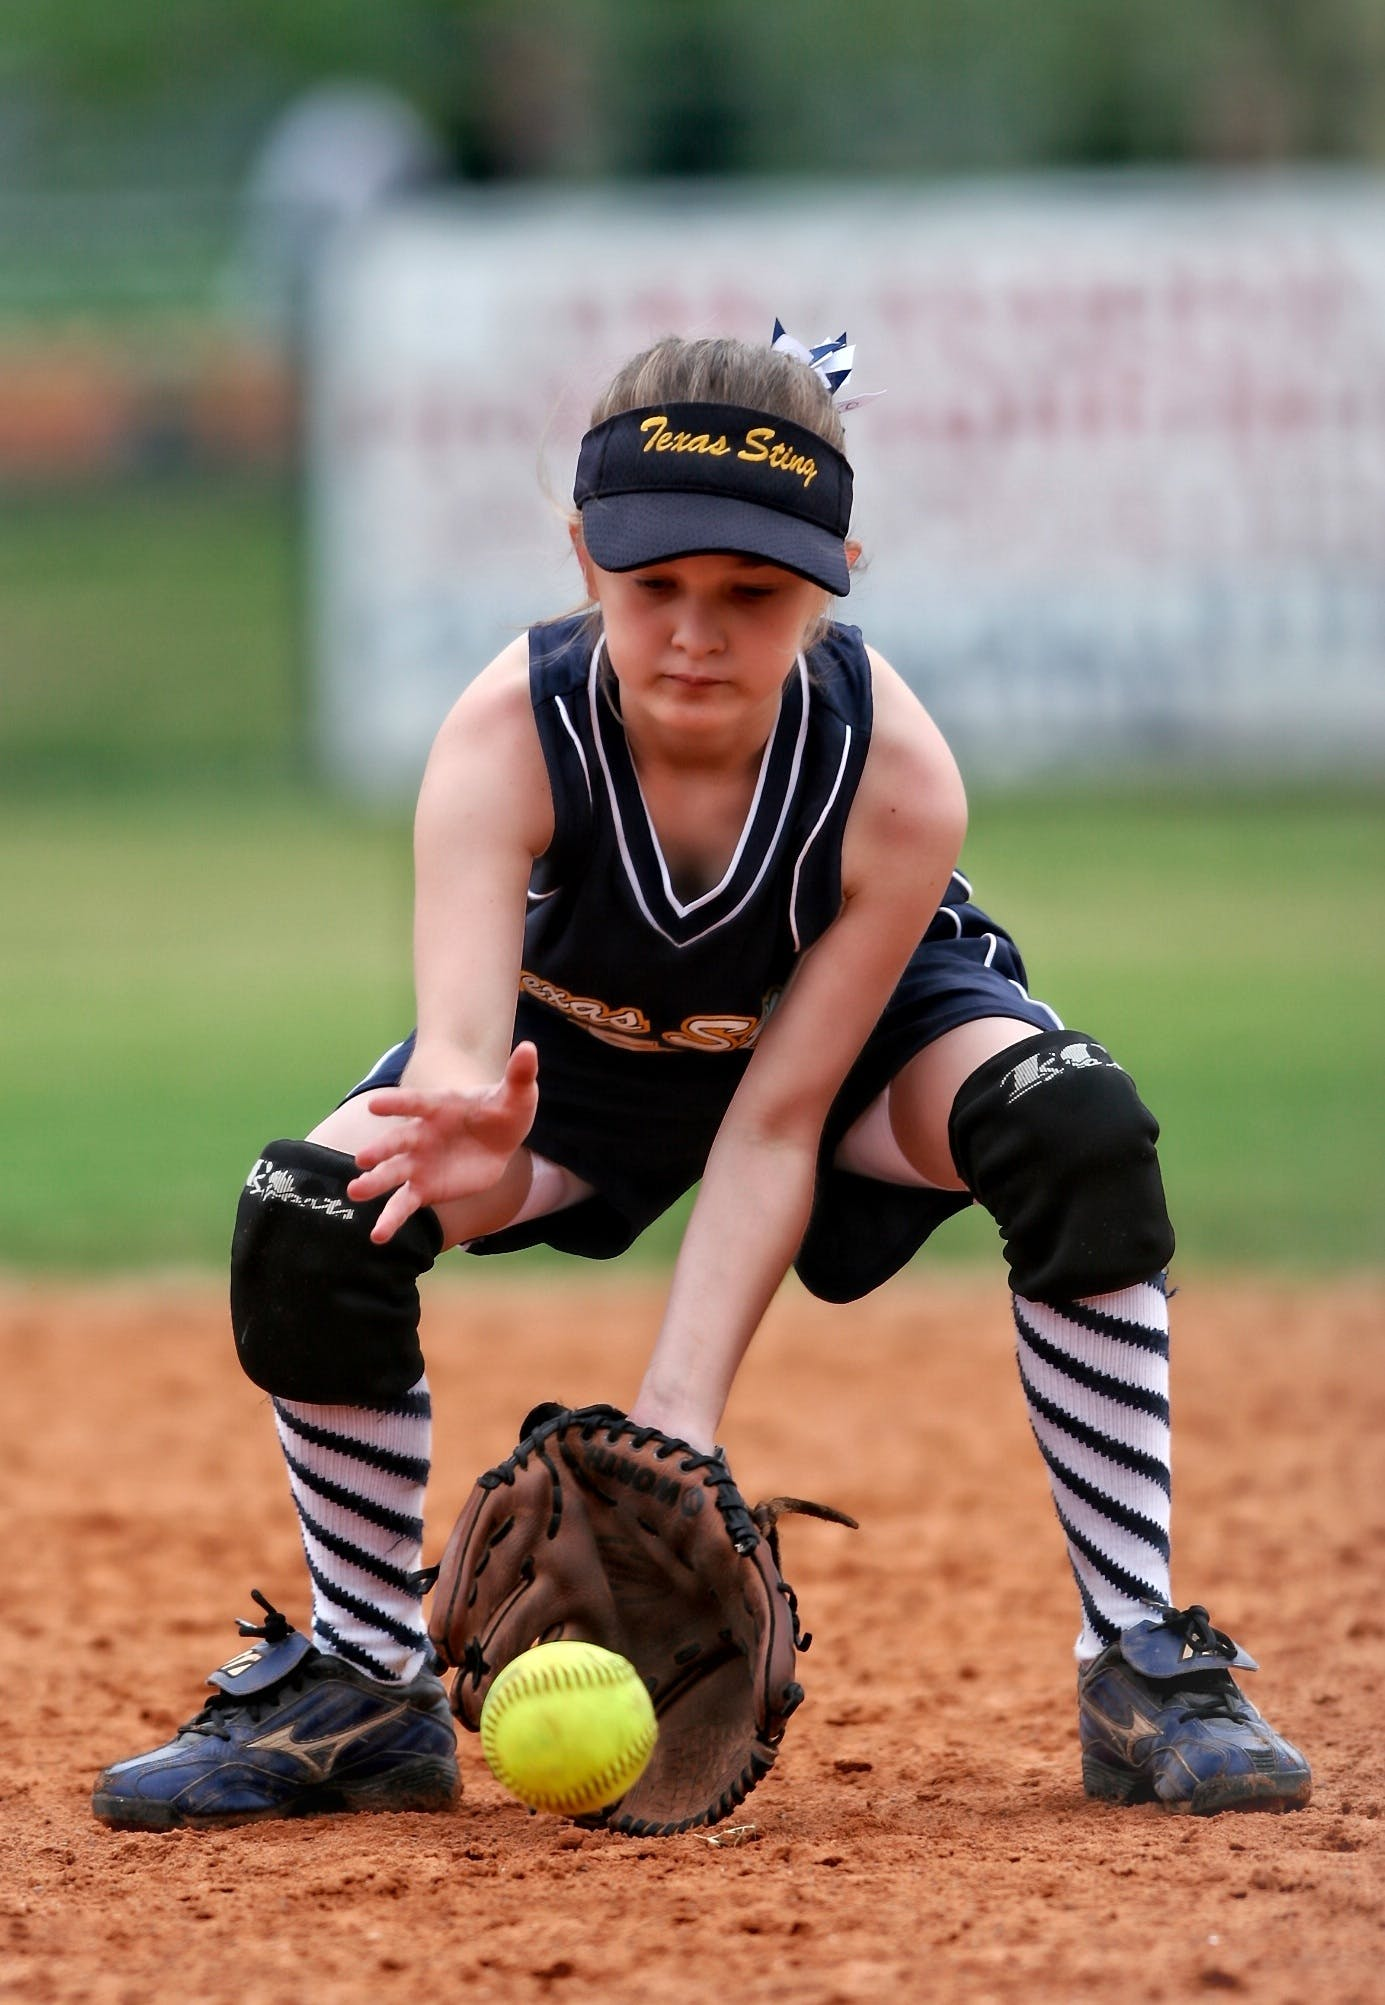 Softball Player About to Catch the Ball